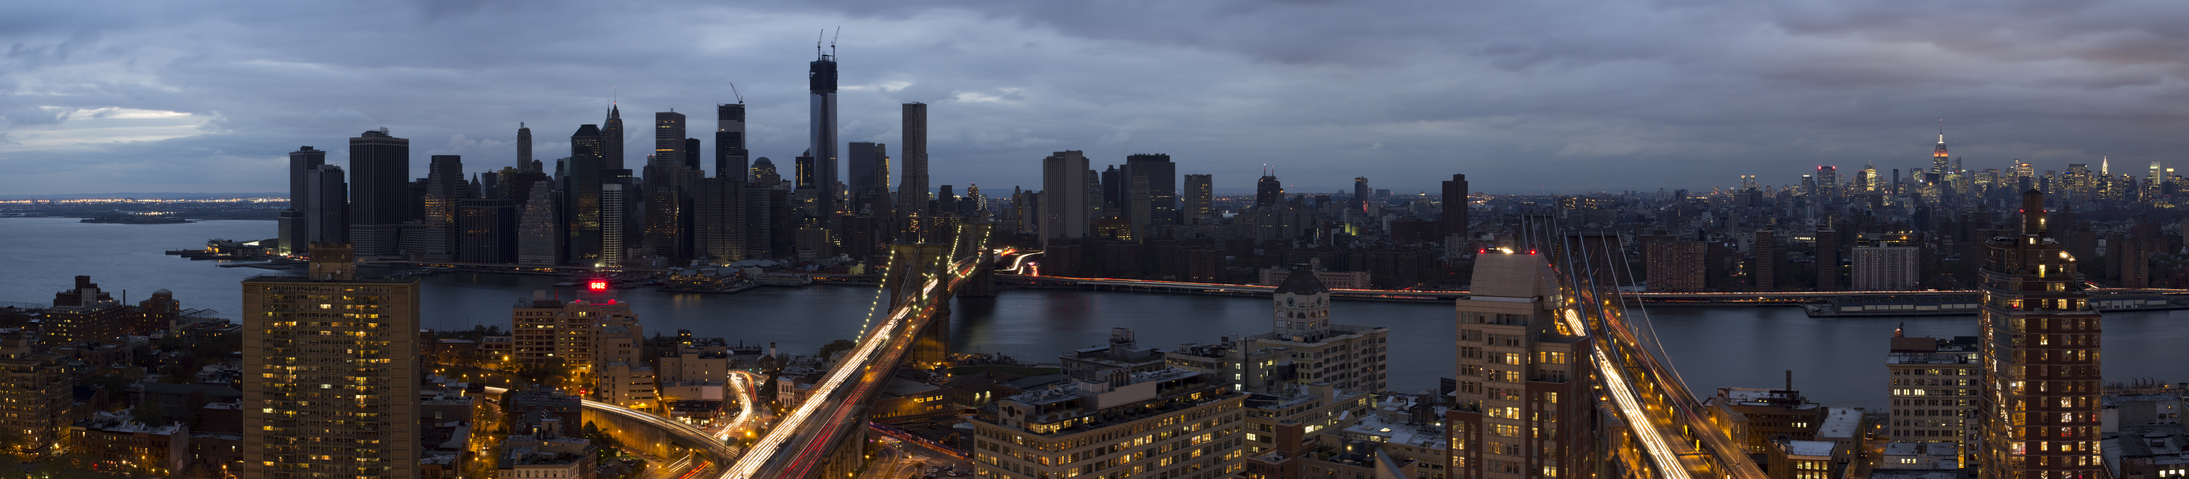 Lower Manhattan in BlackoutPhoto by ReggieLavoie/iStock / Getty Images